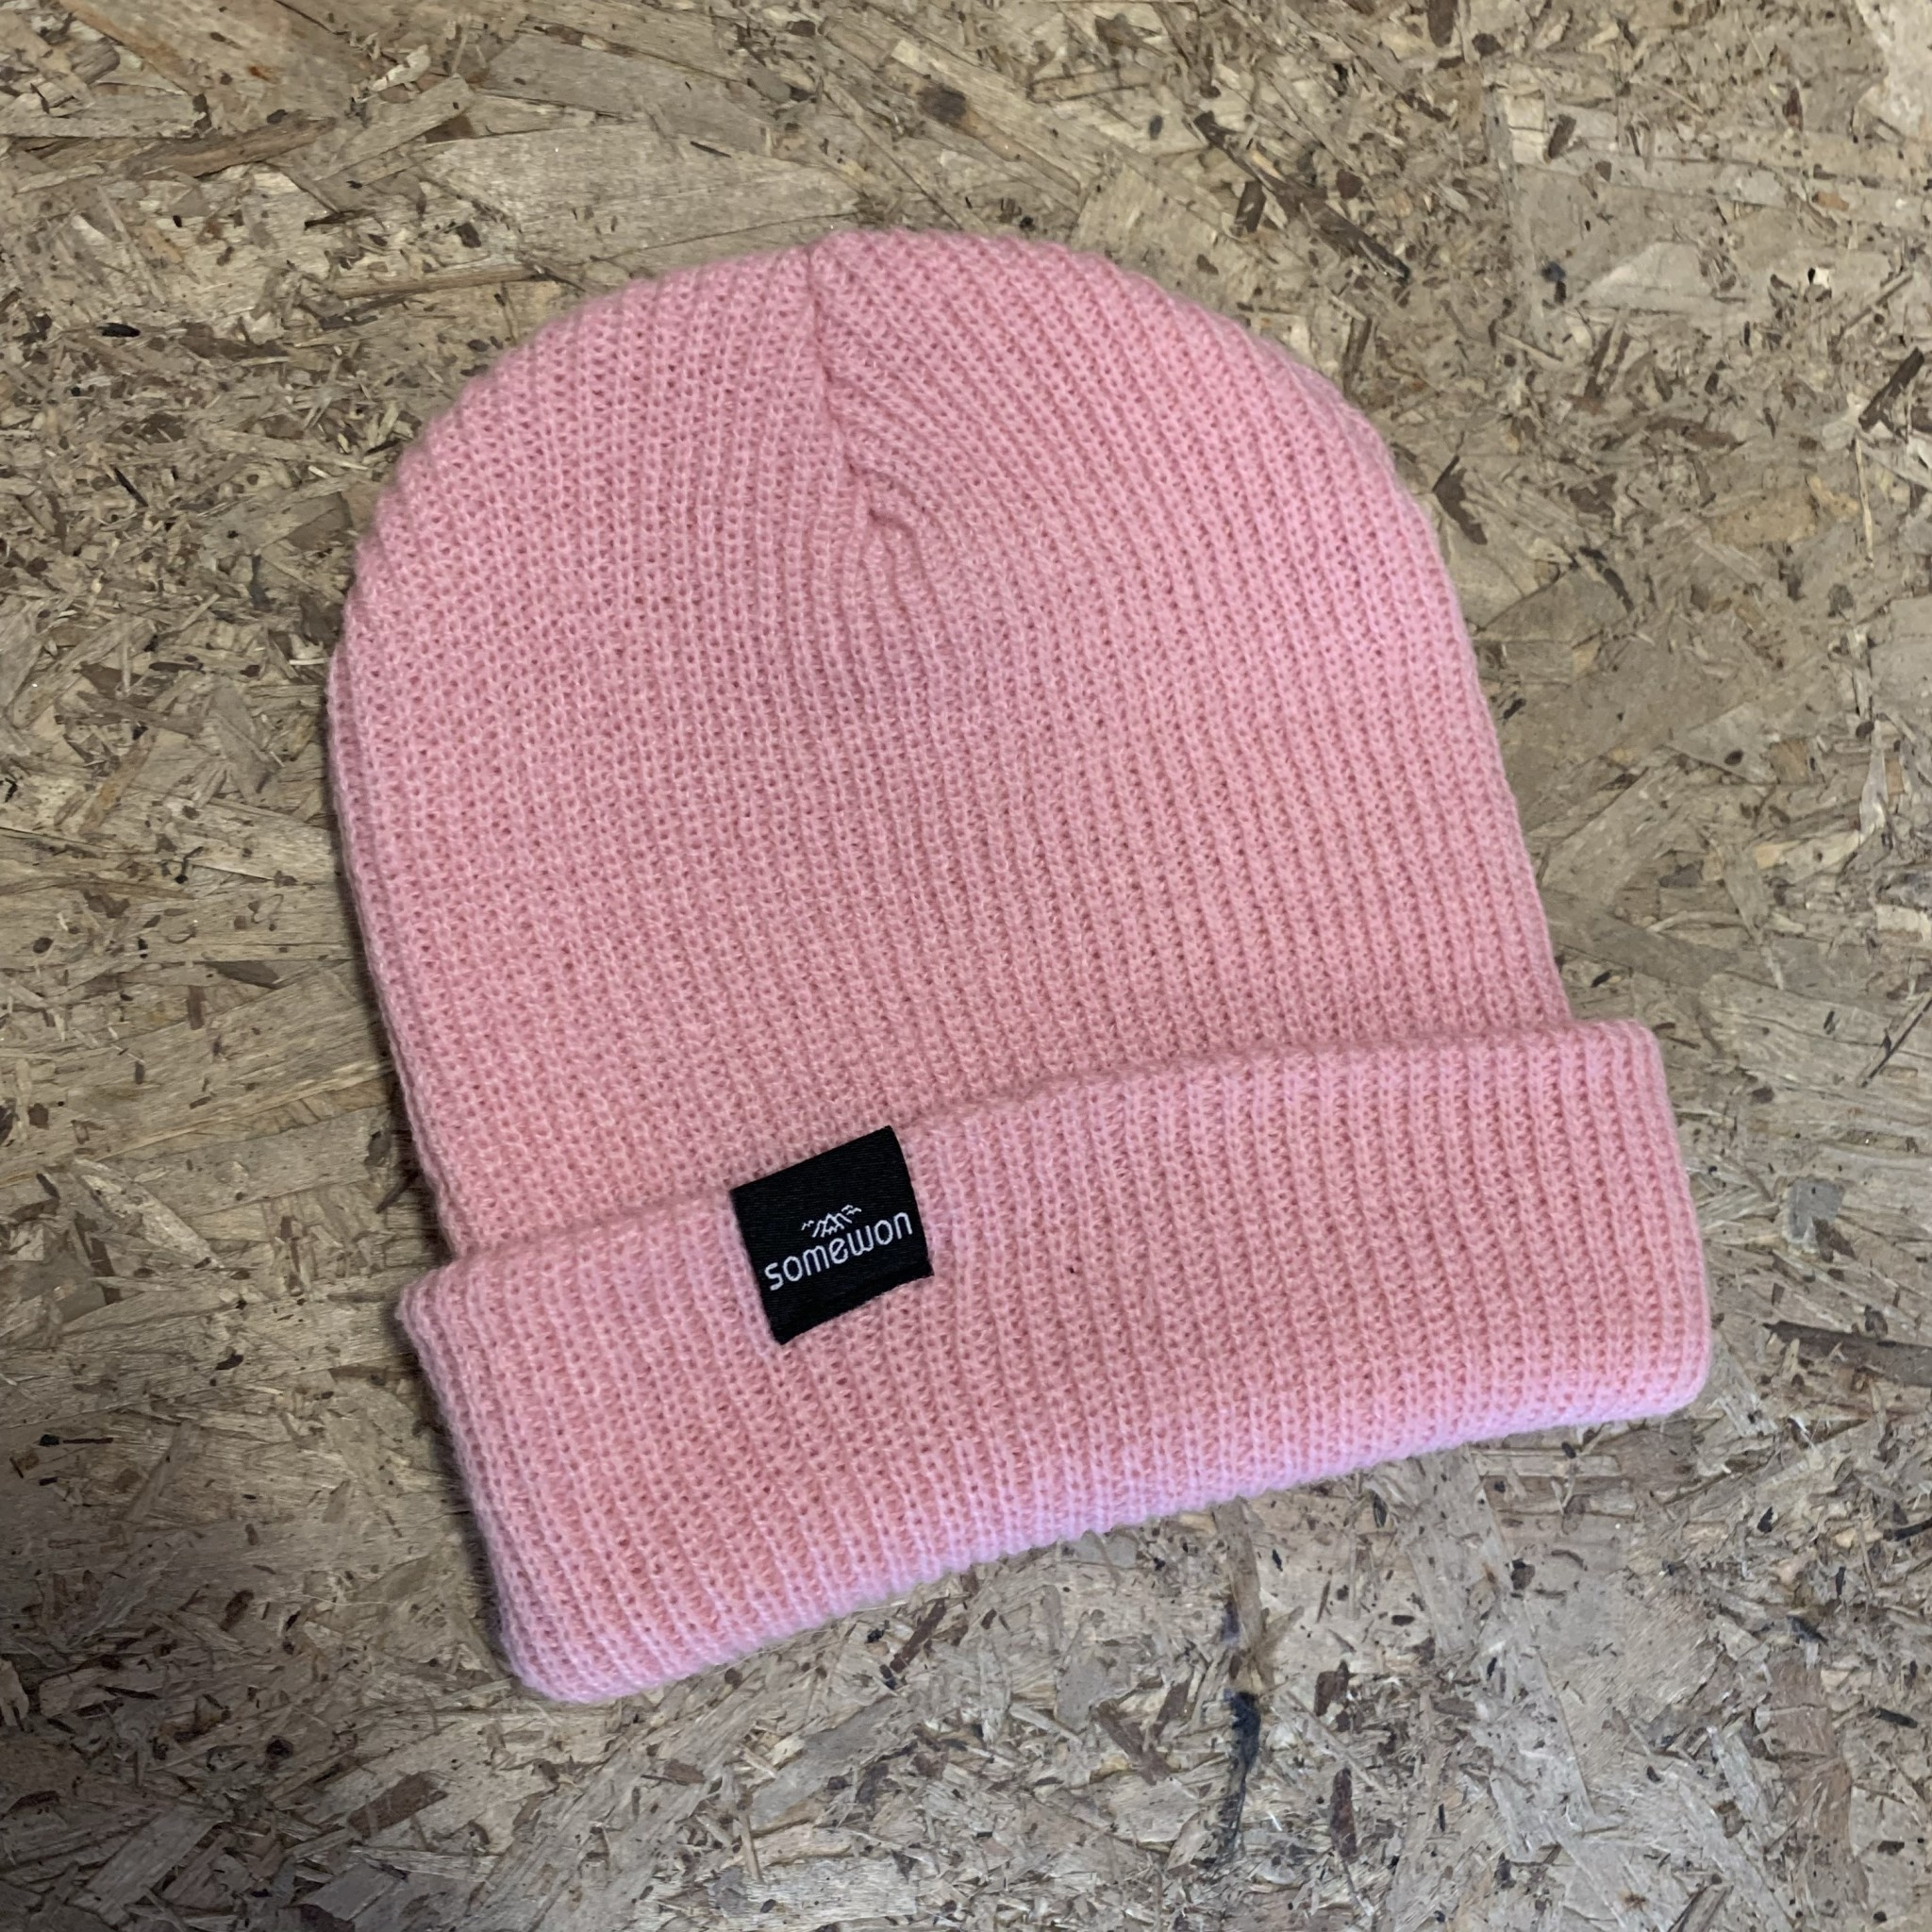 Somewon Collective SomewonCollective - Flip Toque - Pink